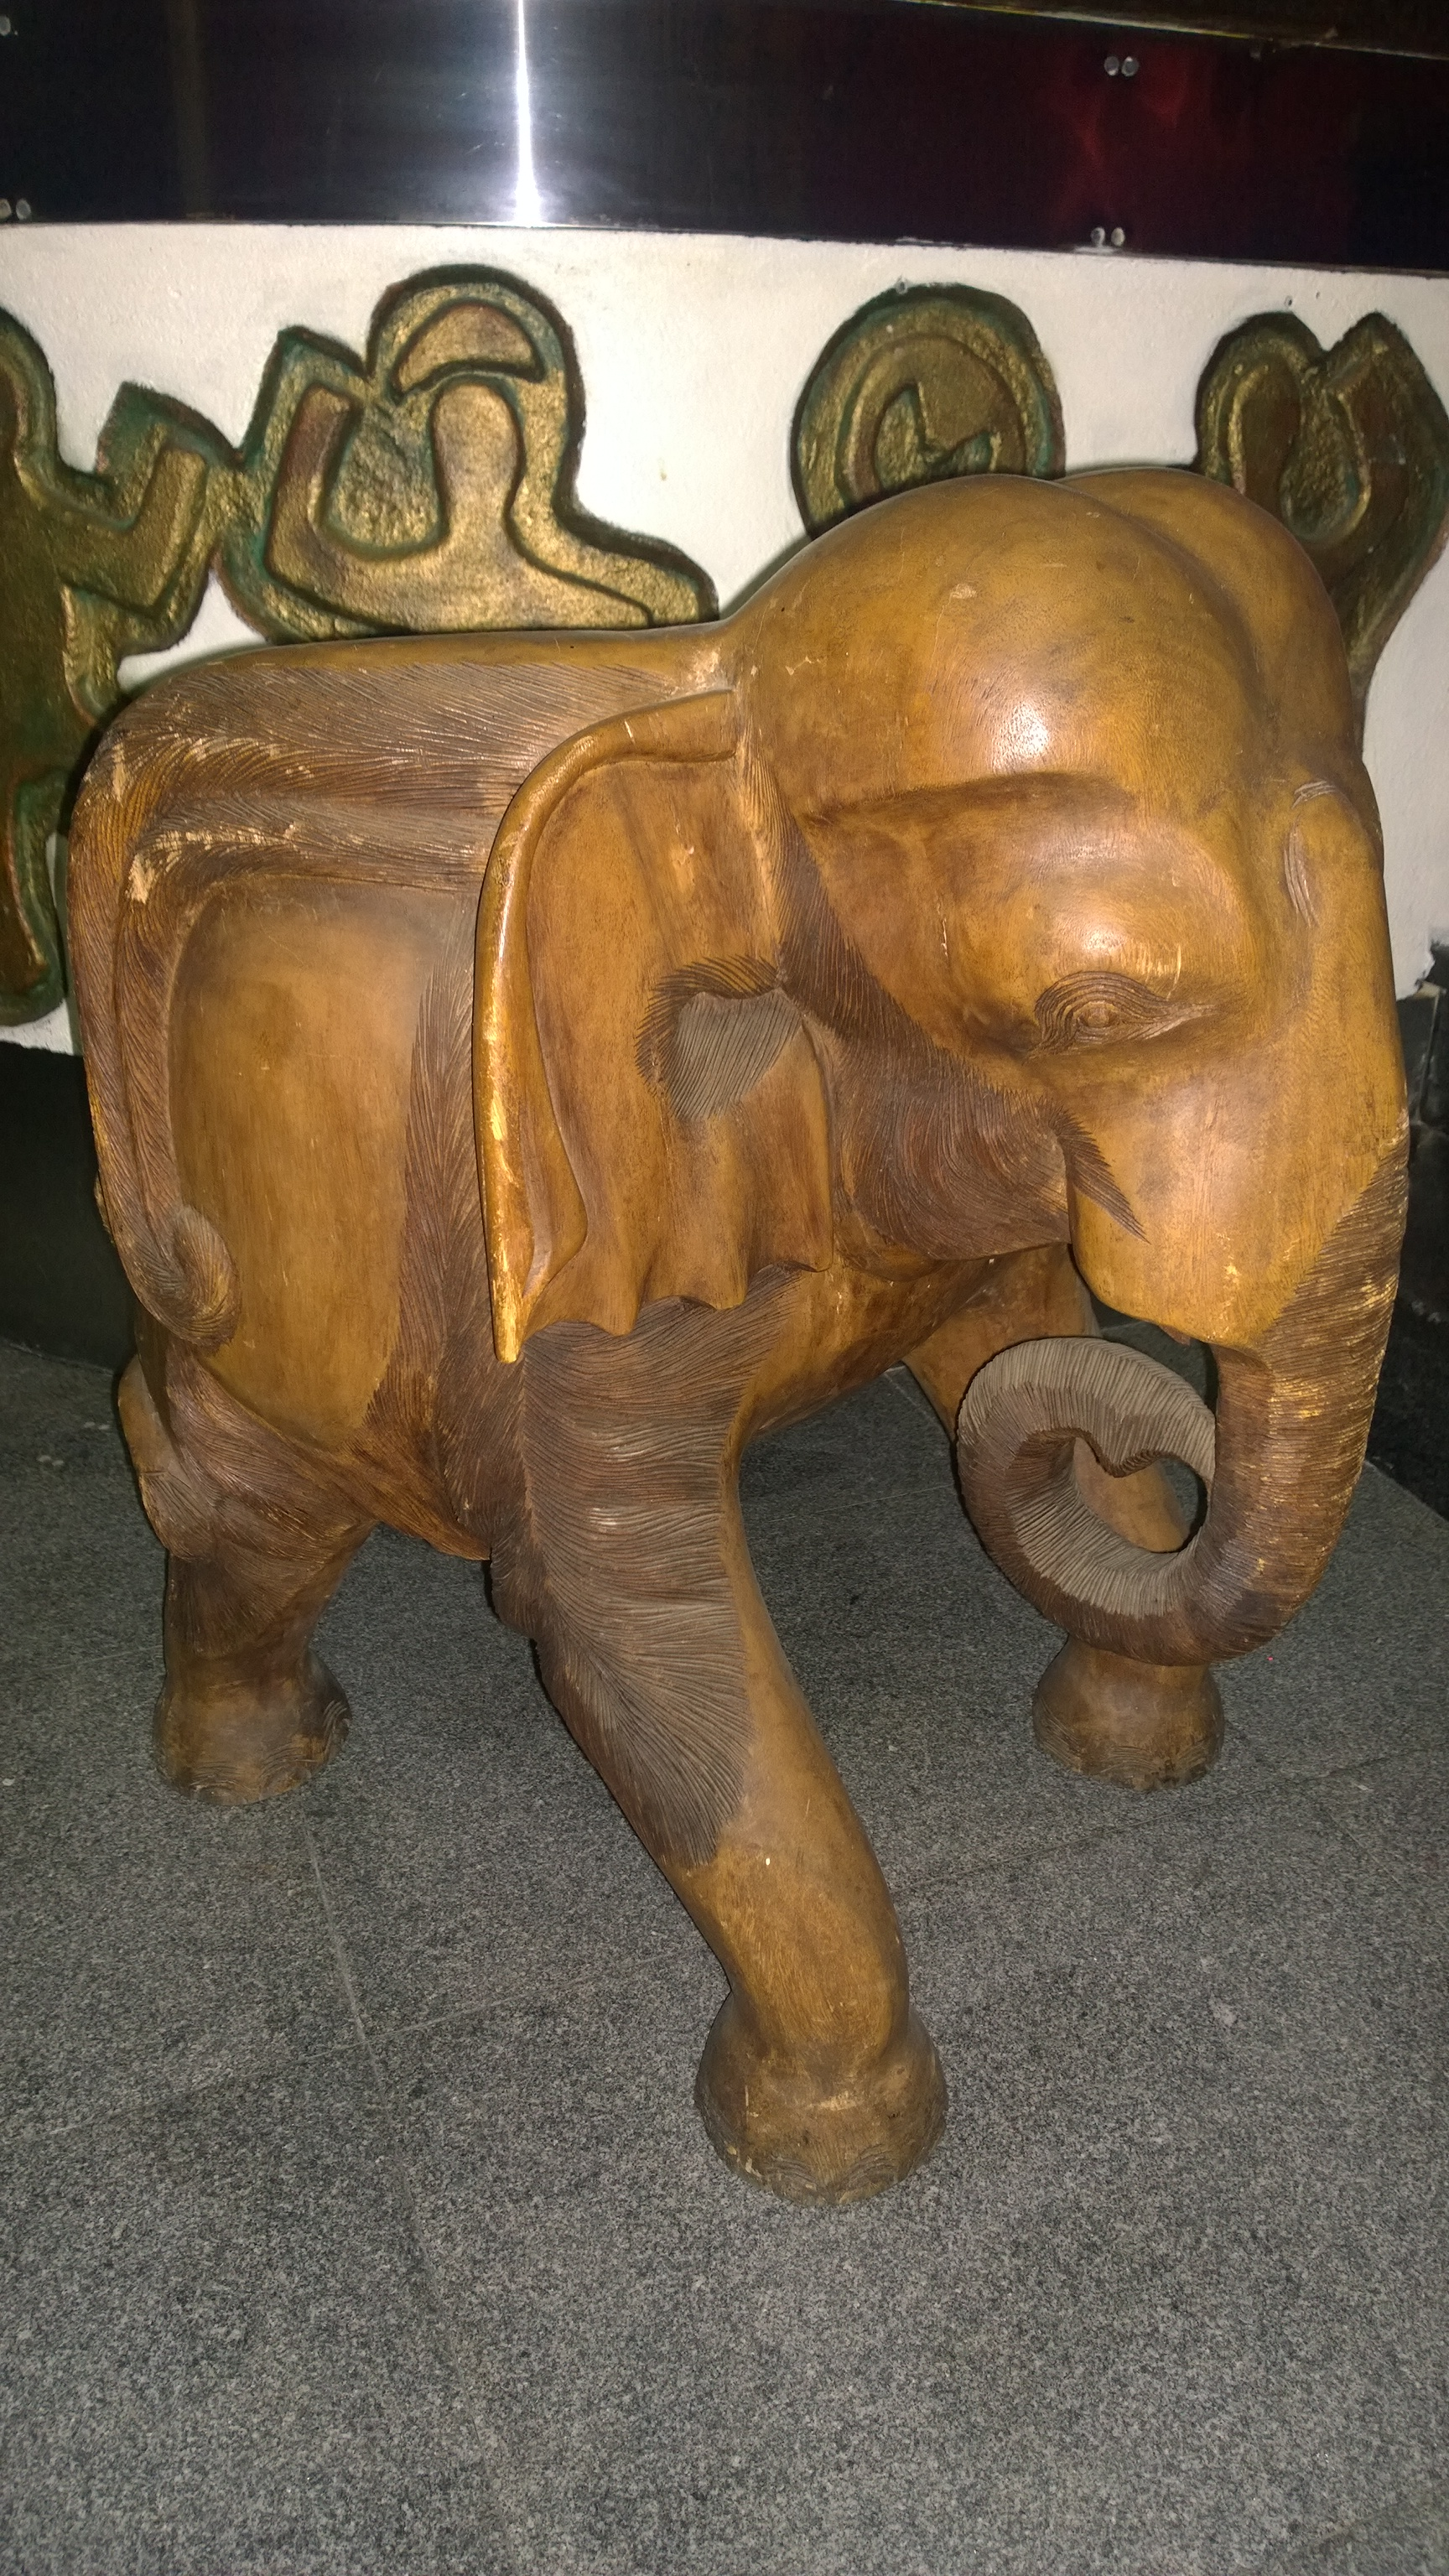 8_Elephant wooden chair